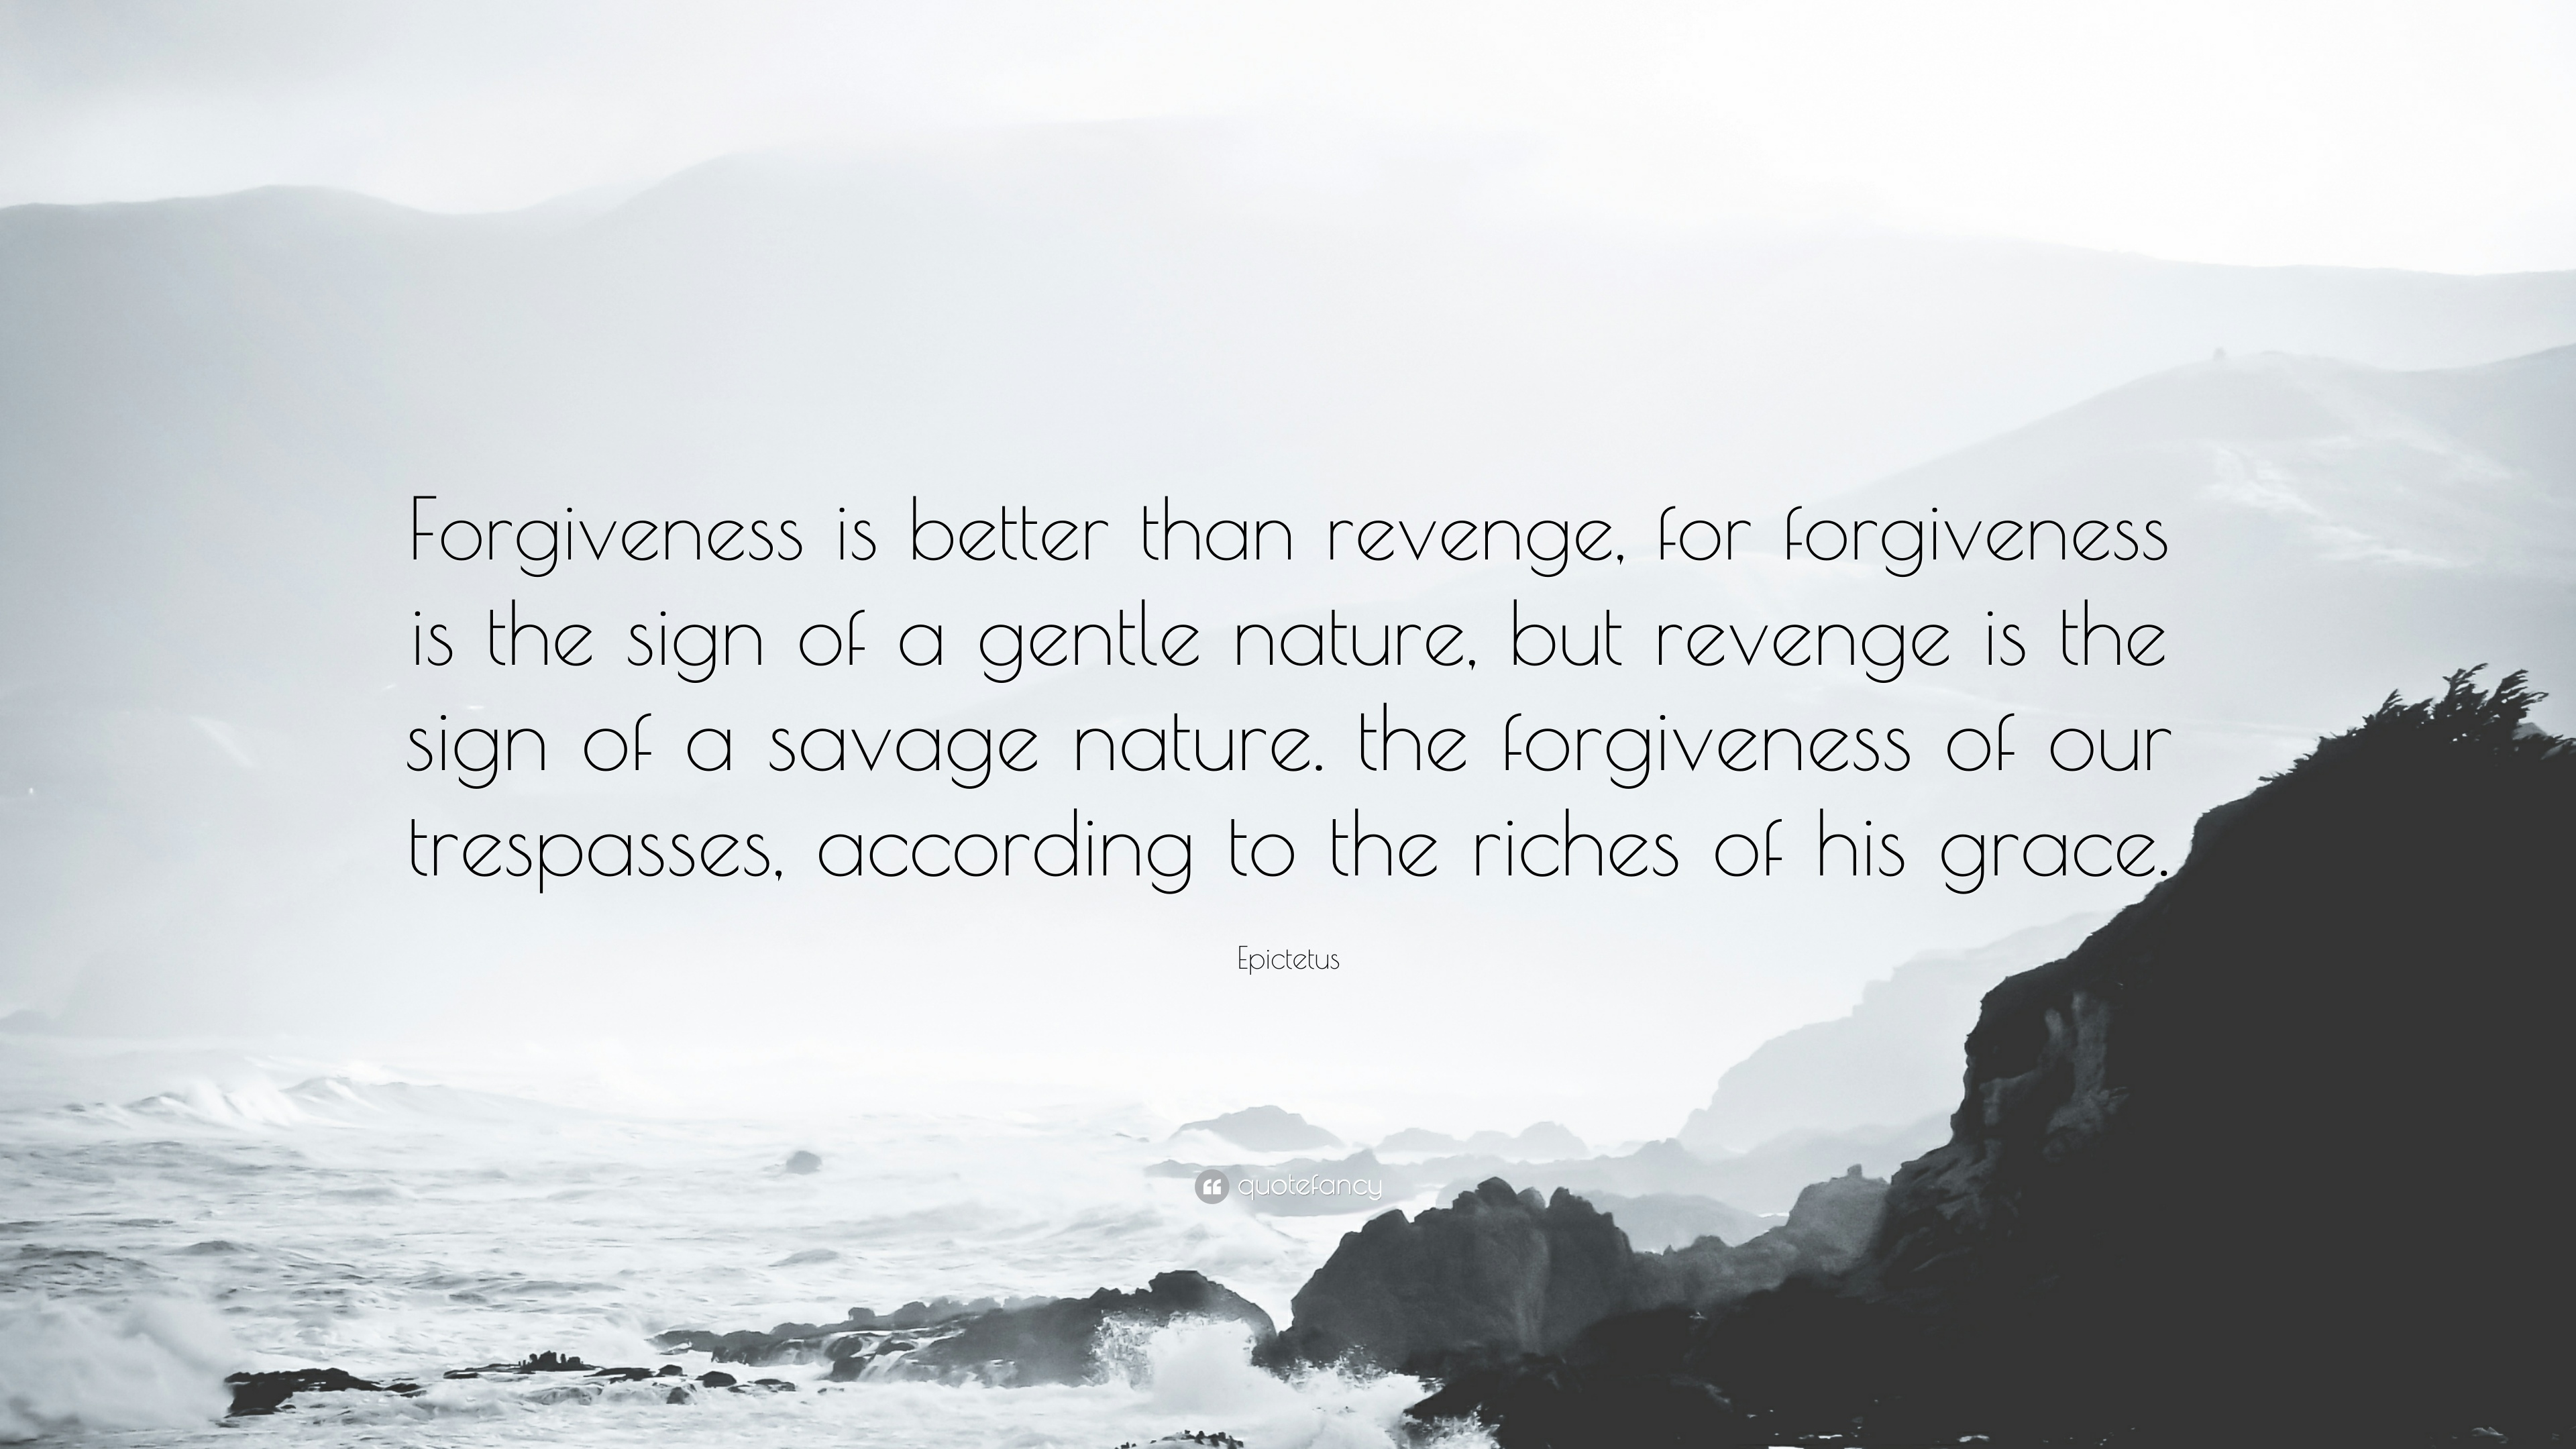 essay on forgiveness is better than revenge A vigilante model of justice: revenge, reconciliation, forgiveness, and types of offense as predictors of revenge, forgiveness blame is better than.